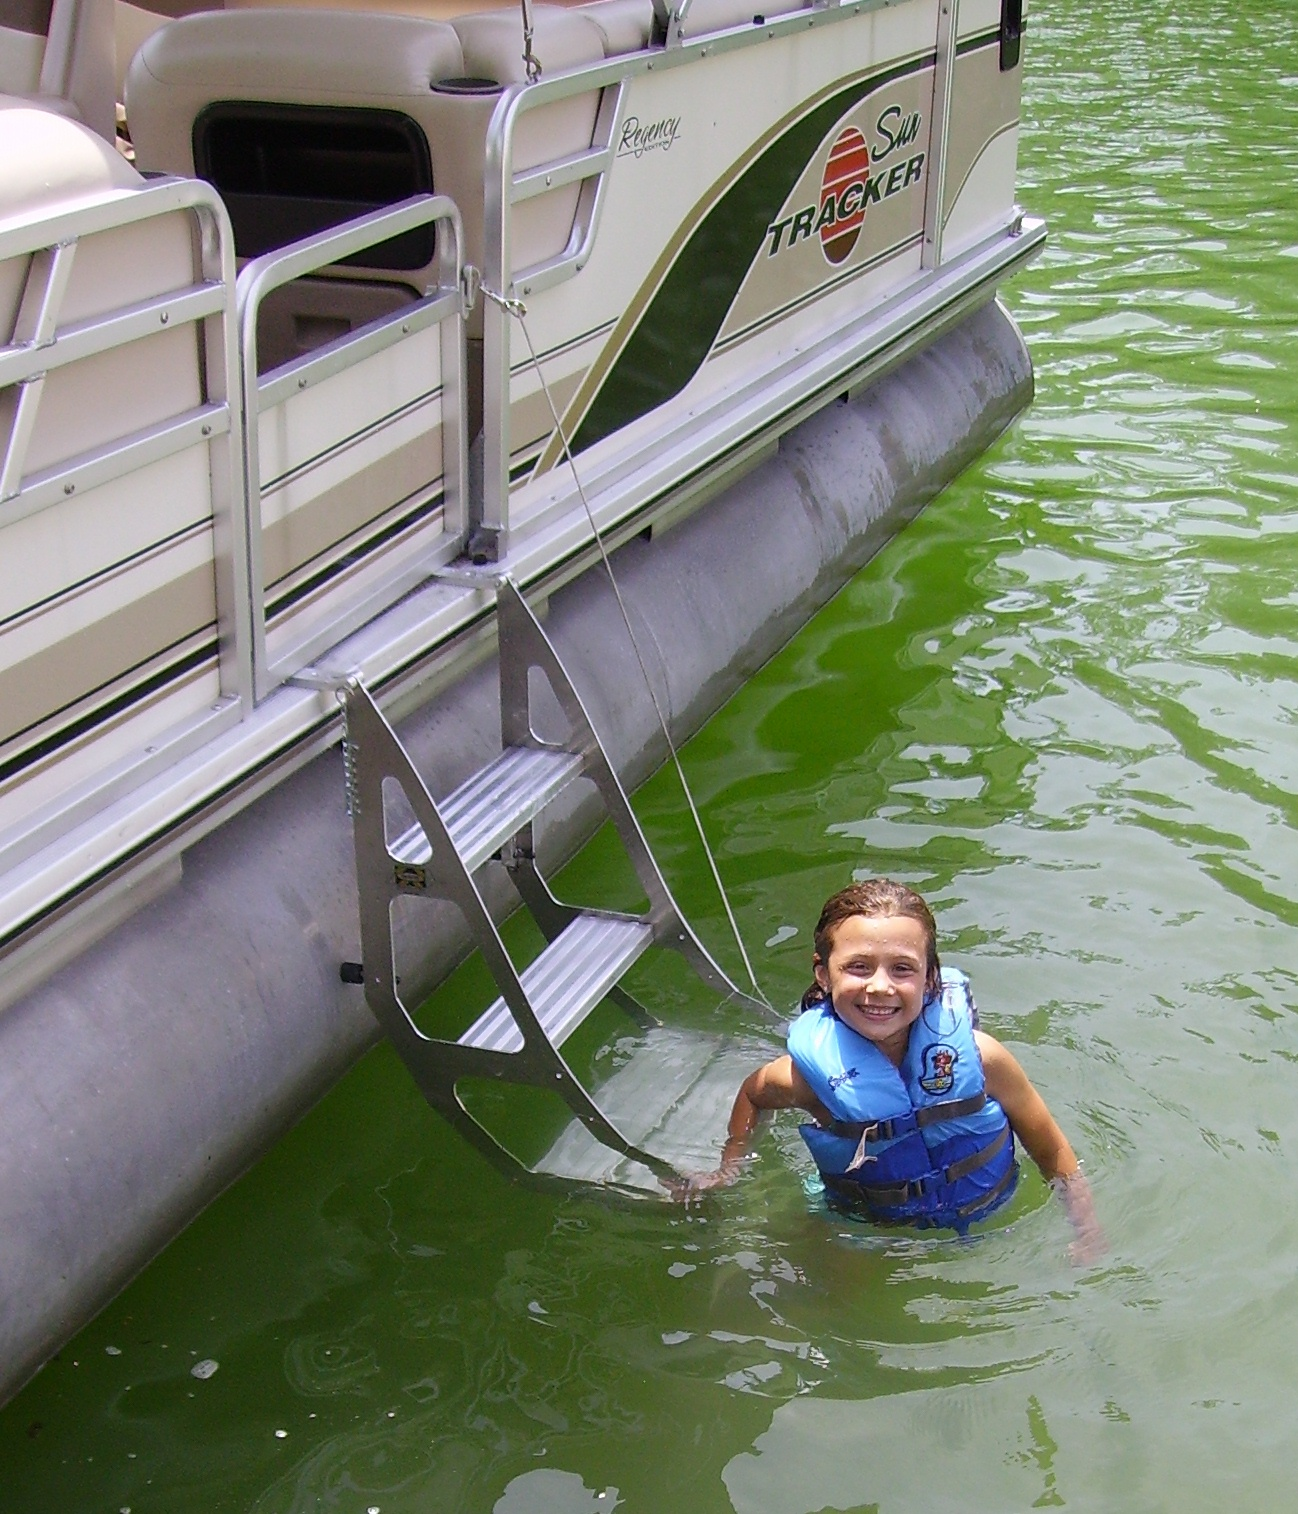 Tooner I Pontoon Ladder Pontoon Boat Access Marine Ias